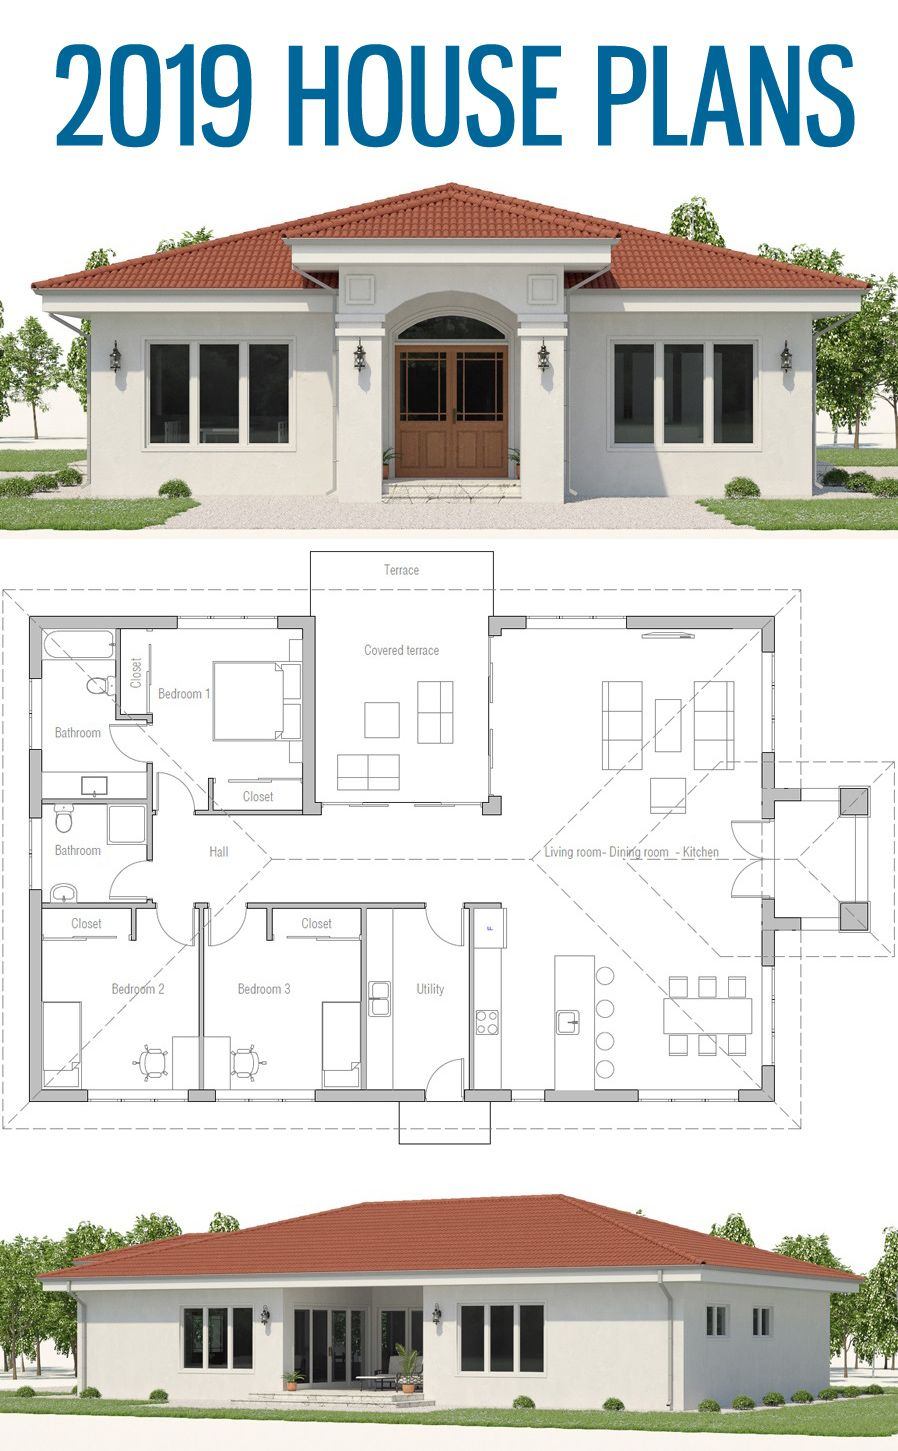 Casa Pequena Planta De Casa Planos De Casa House Plan Gallery House Construction Plan Model House Plan